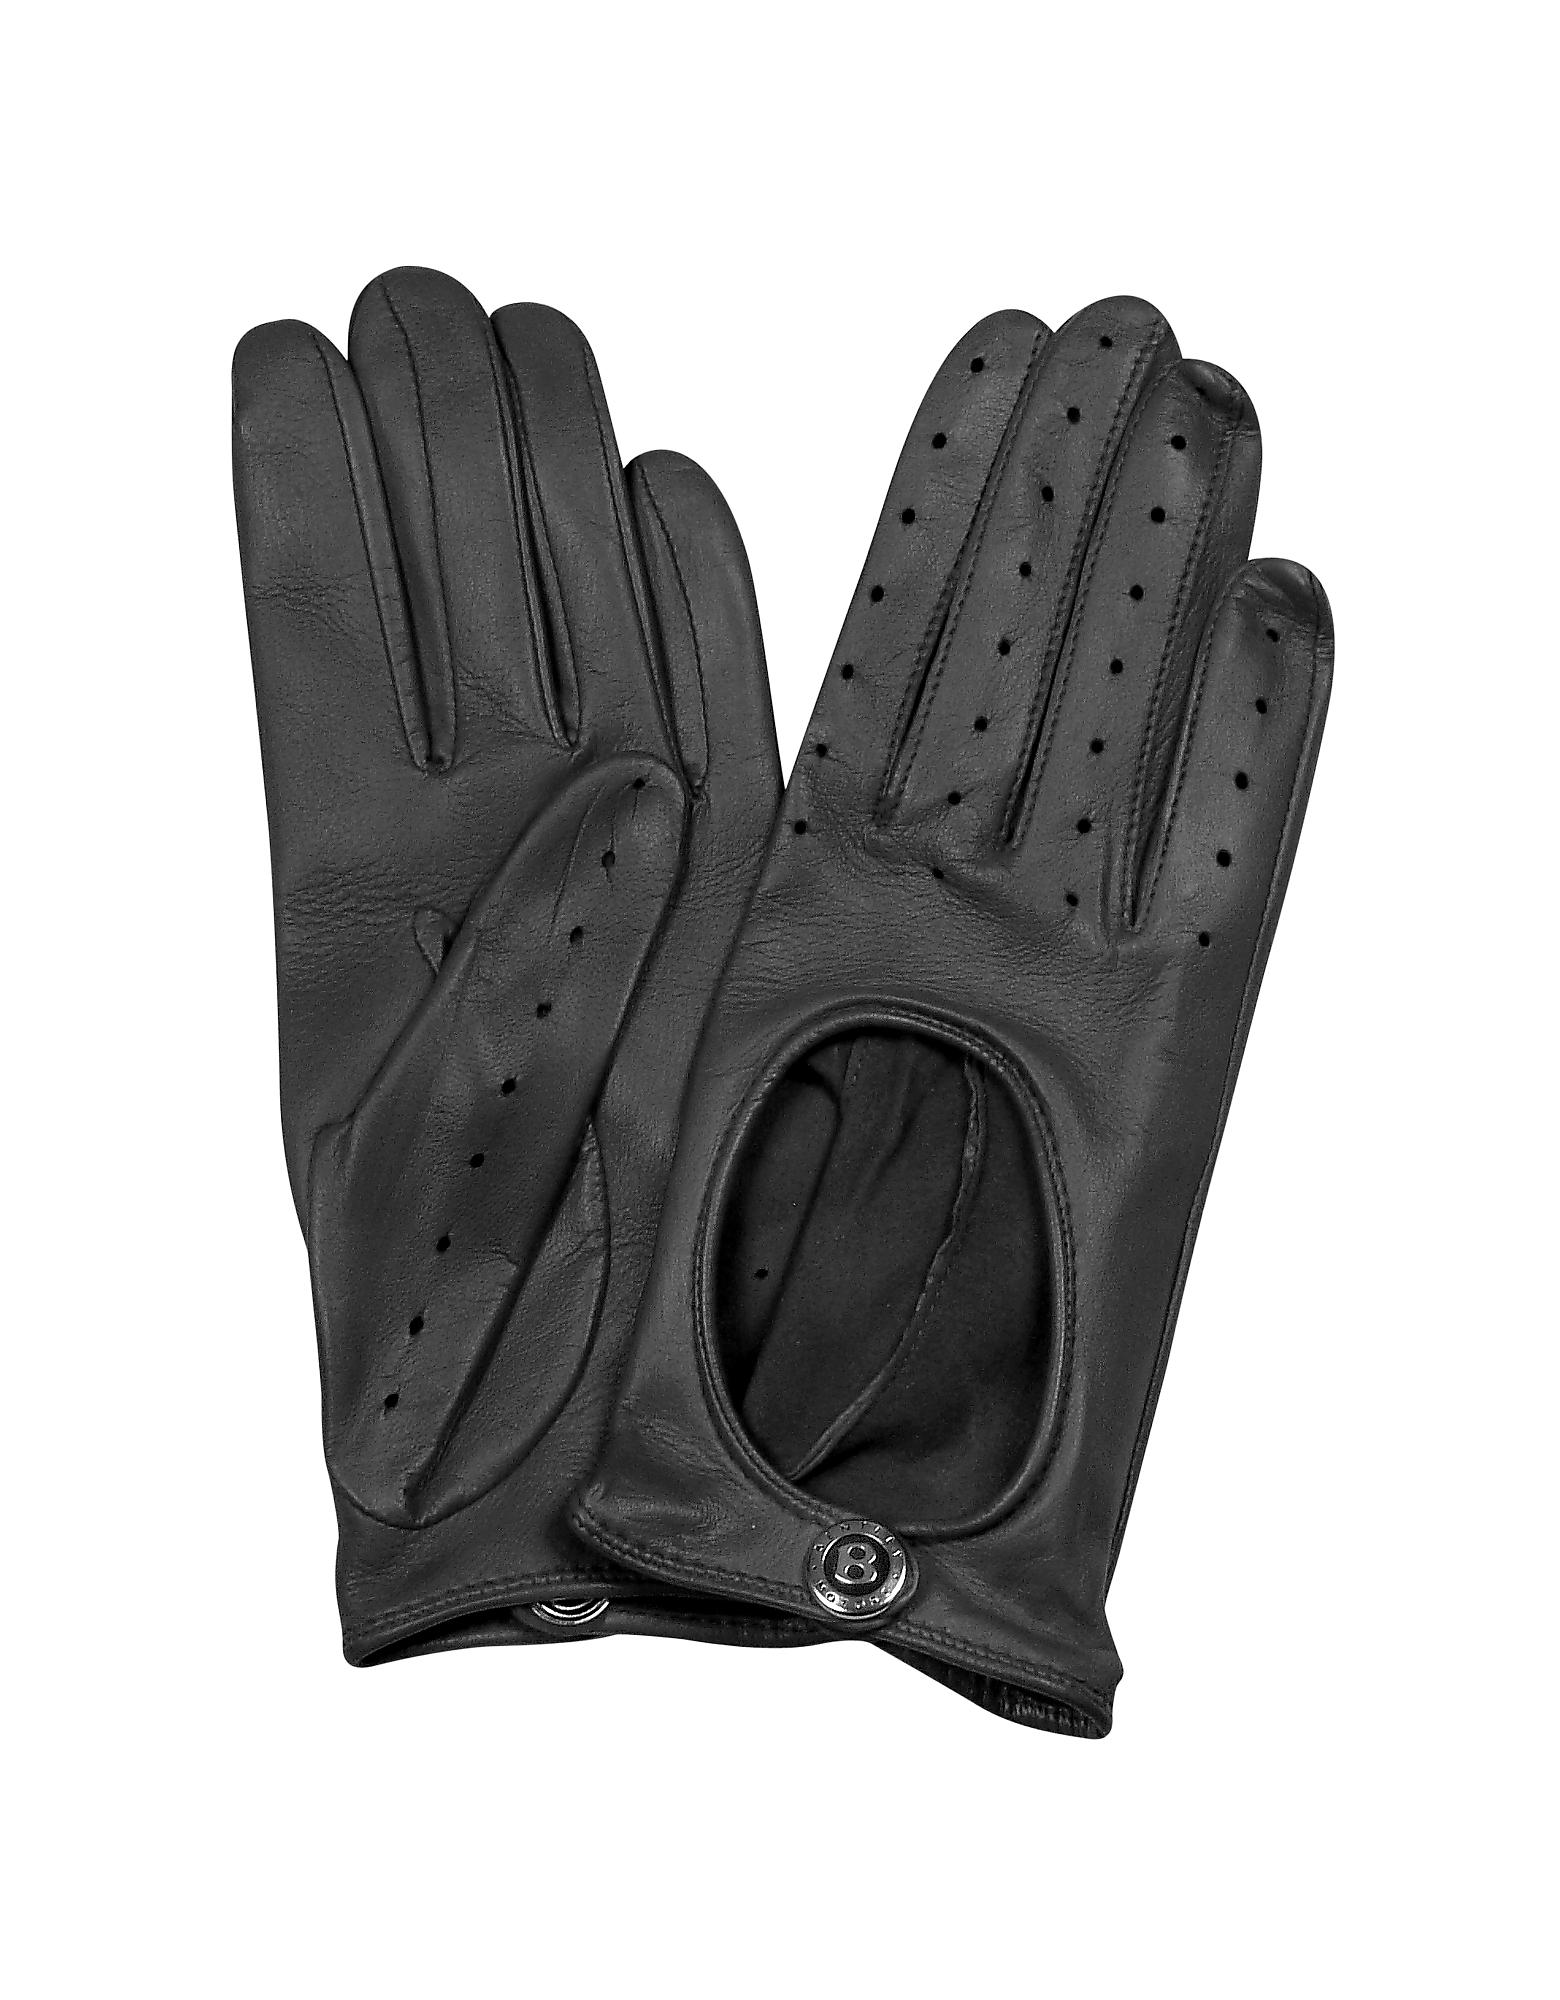 Pittards ladies leather gloves - Bentley Women S Dents Pittards Cabretta Black Driving Ladies Gloves